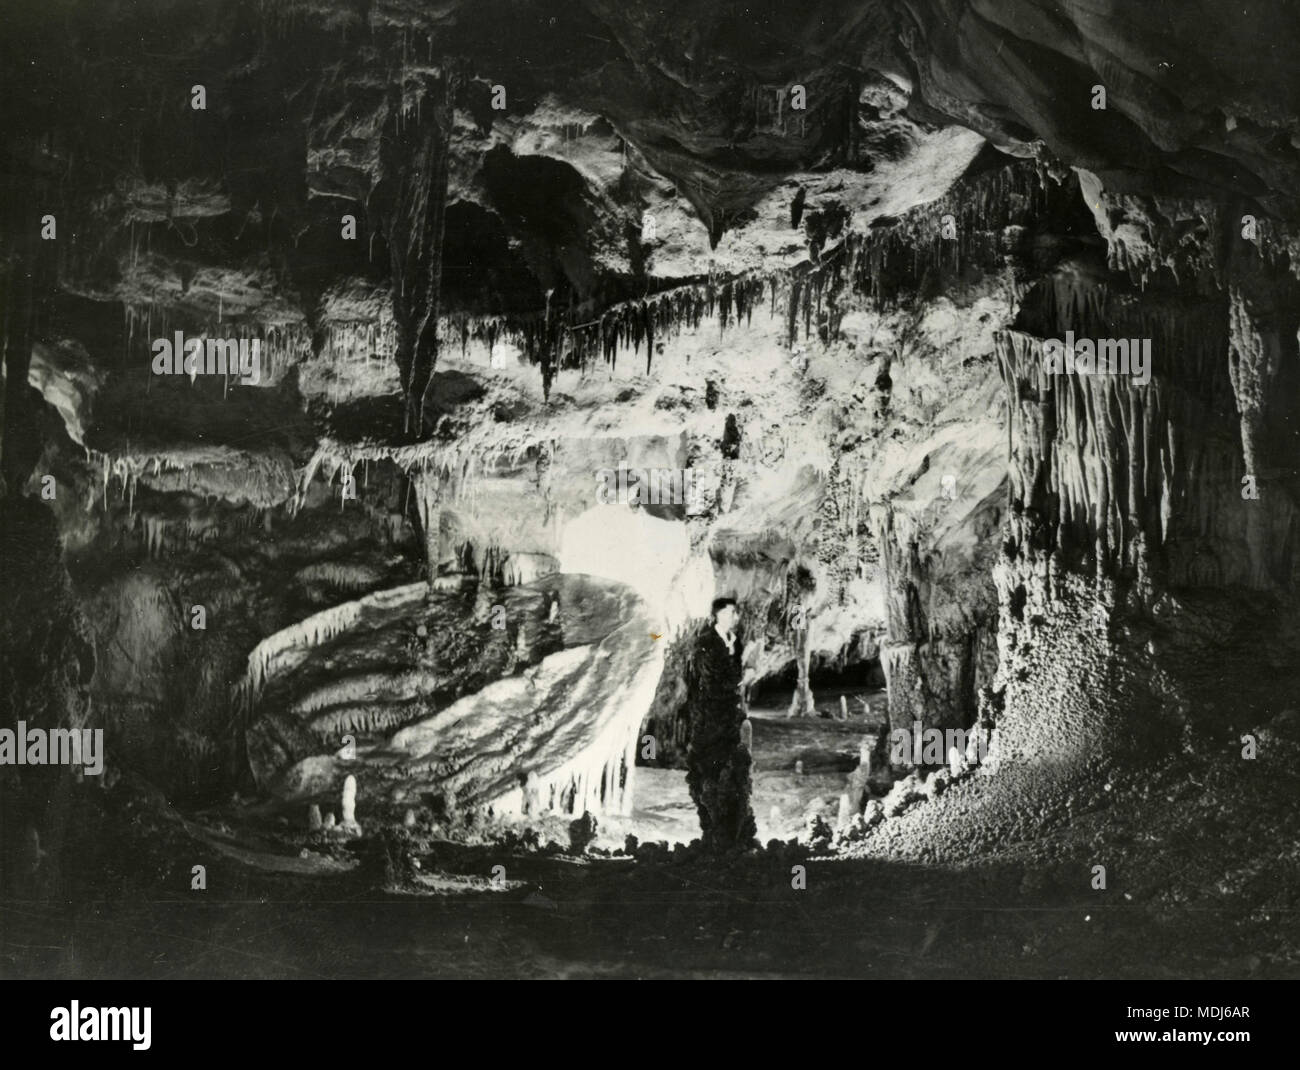 Inside a chimny cave carved by the Pas river, Spain 1950s - Stock Image